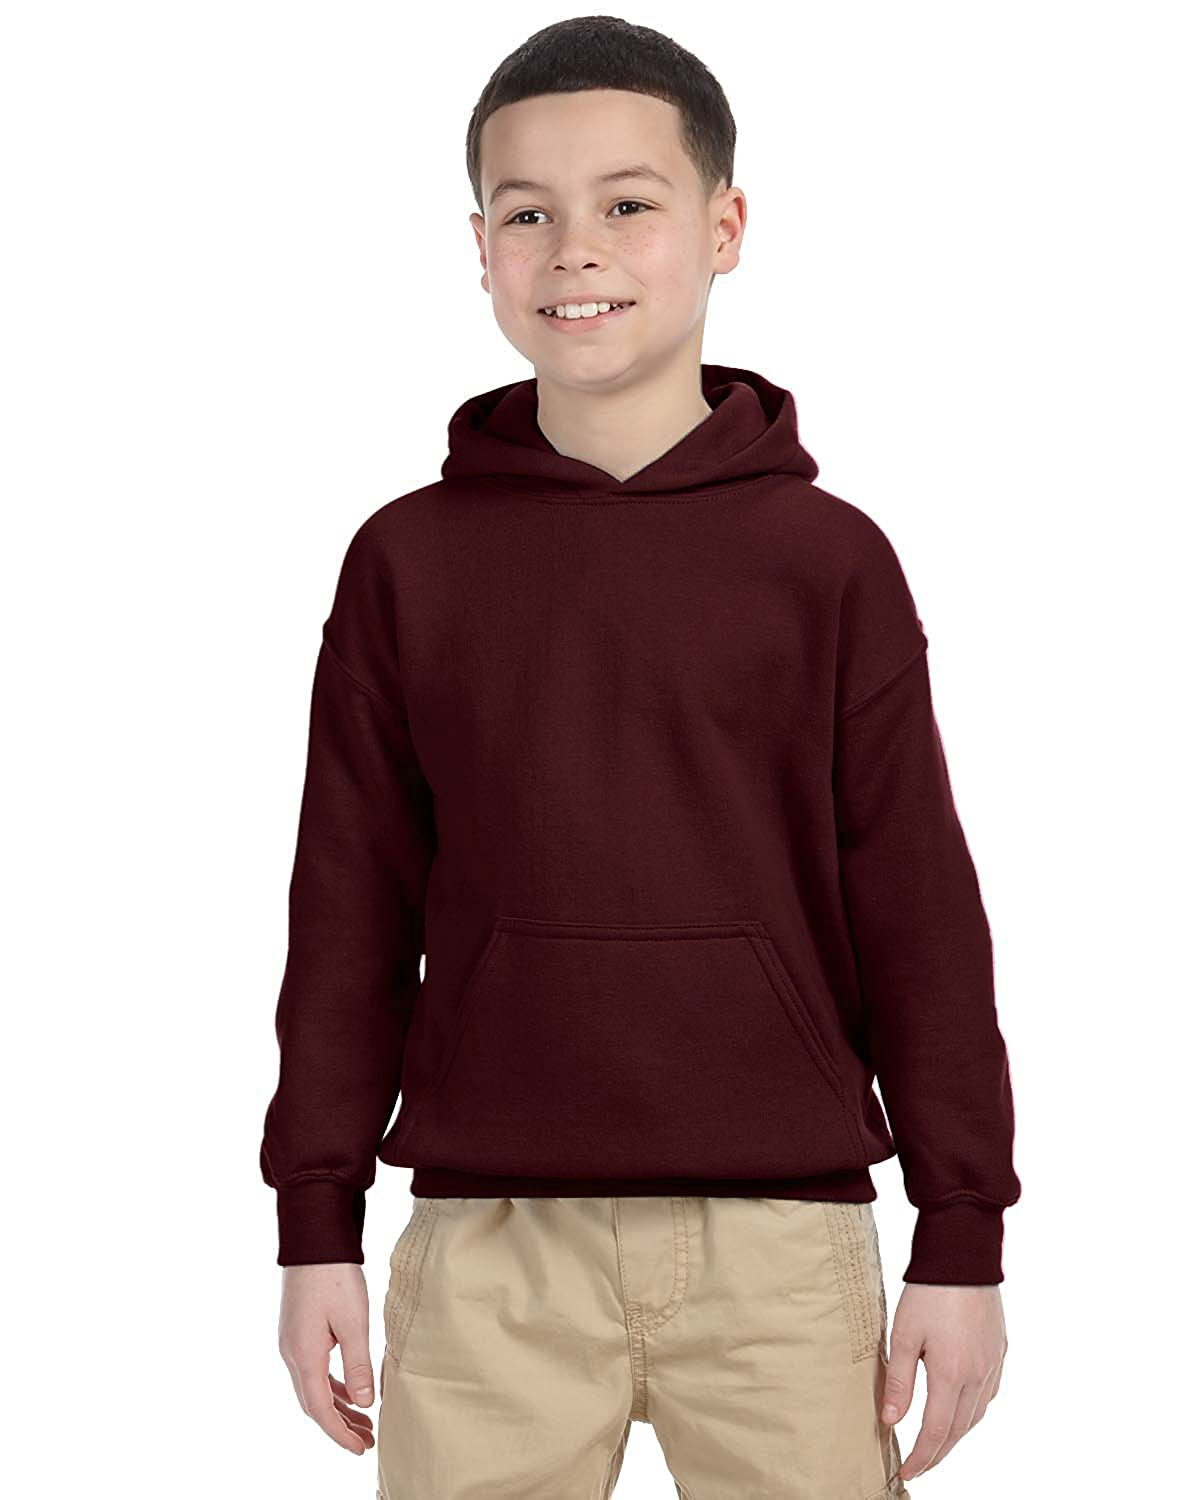 Indica Plateau Youth American Made Kids Hoodie